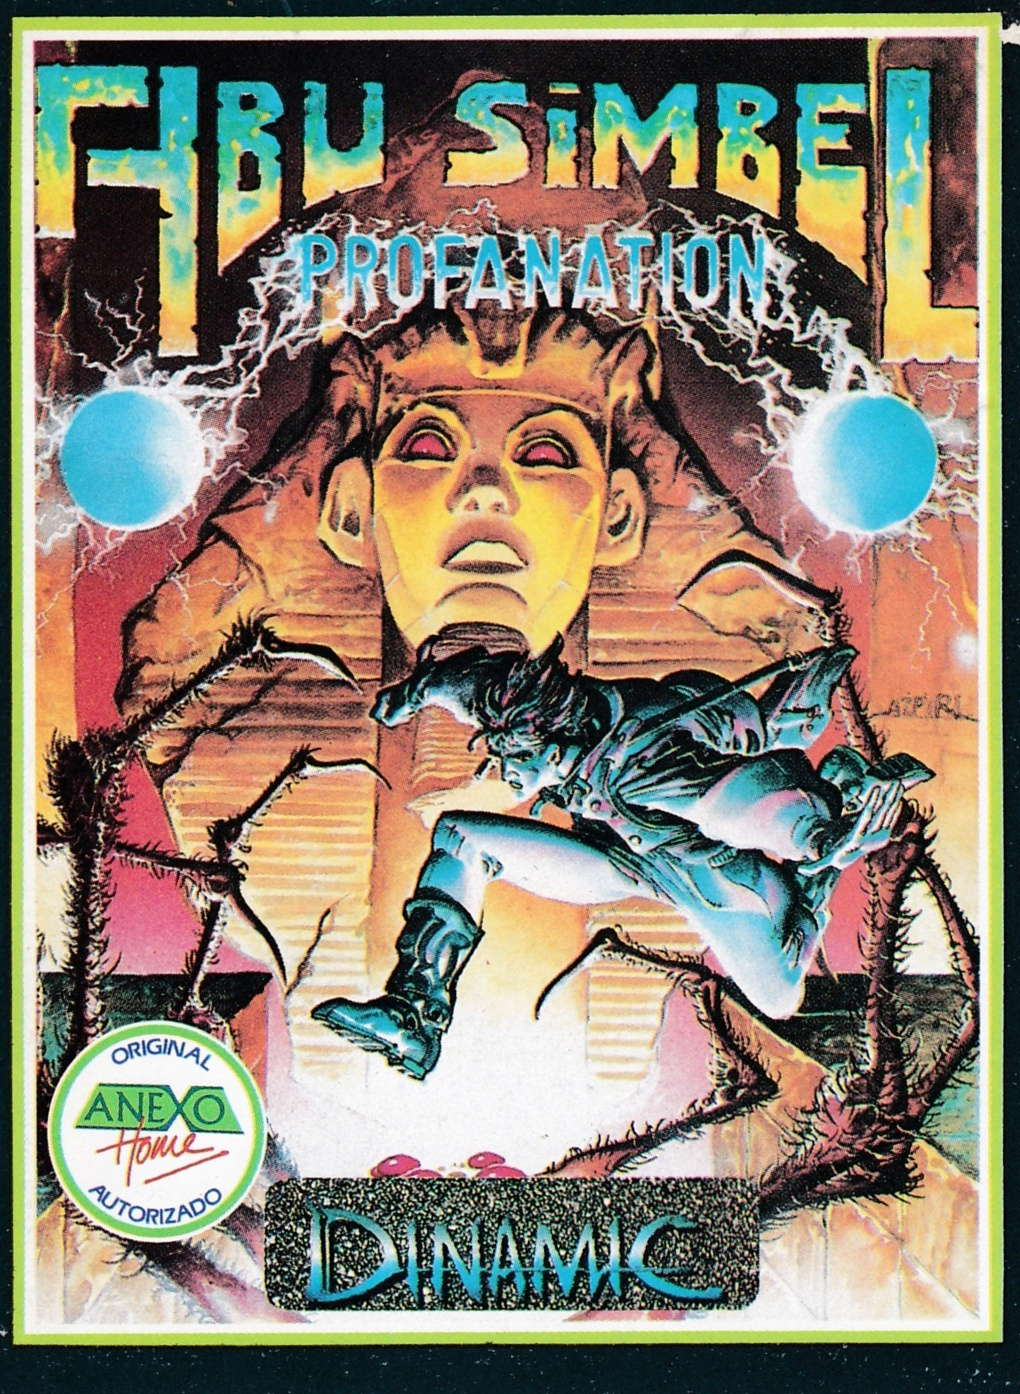 cover of the Amstrad CPC game Abu Simbel Profanation  by GameBase CPC